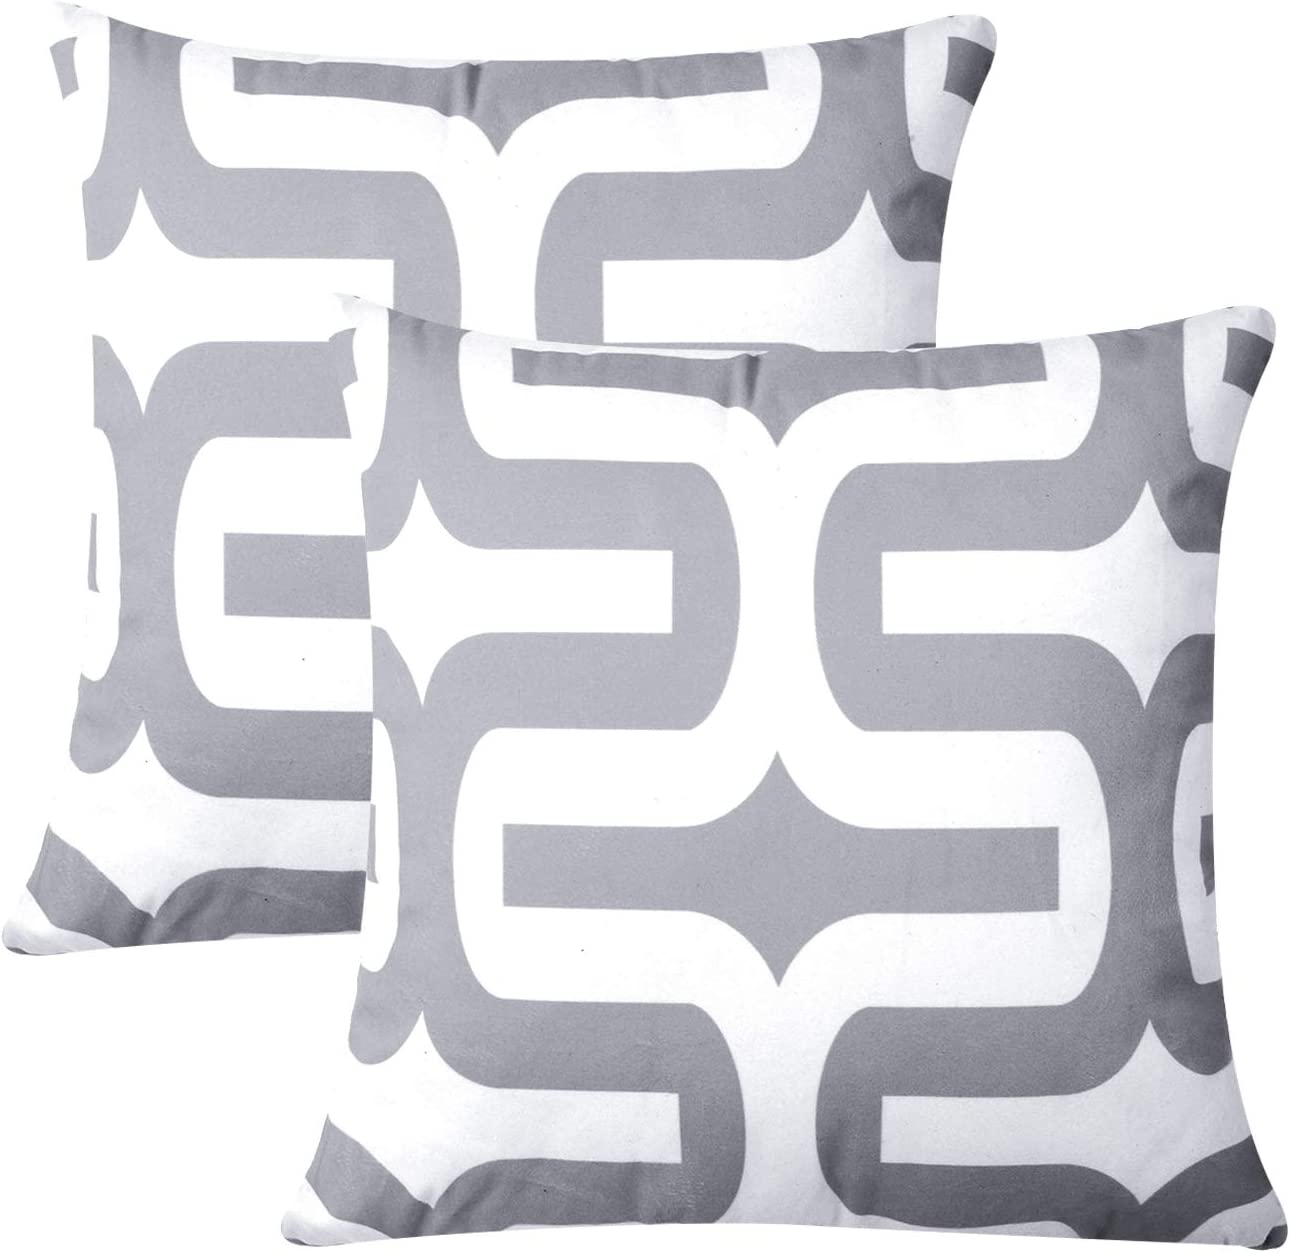 Top Finel Decorative Throw Pillow Covers-Soft Microfiber Outdoor Cushion Covers 18 X 18 for Sofa Bedroom Car, Pack of 2